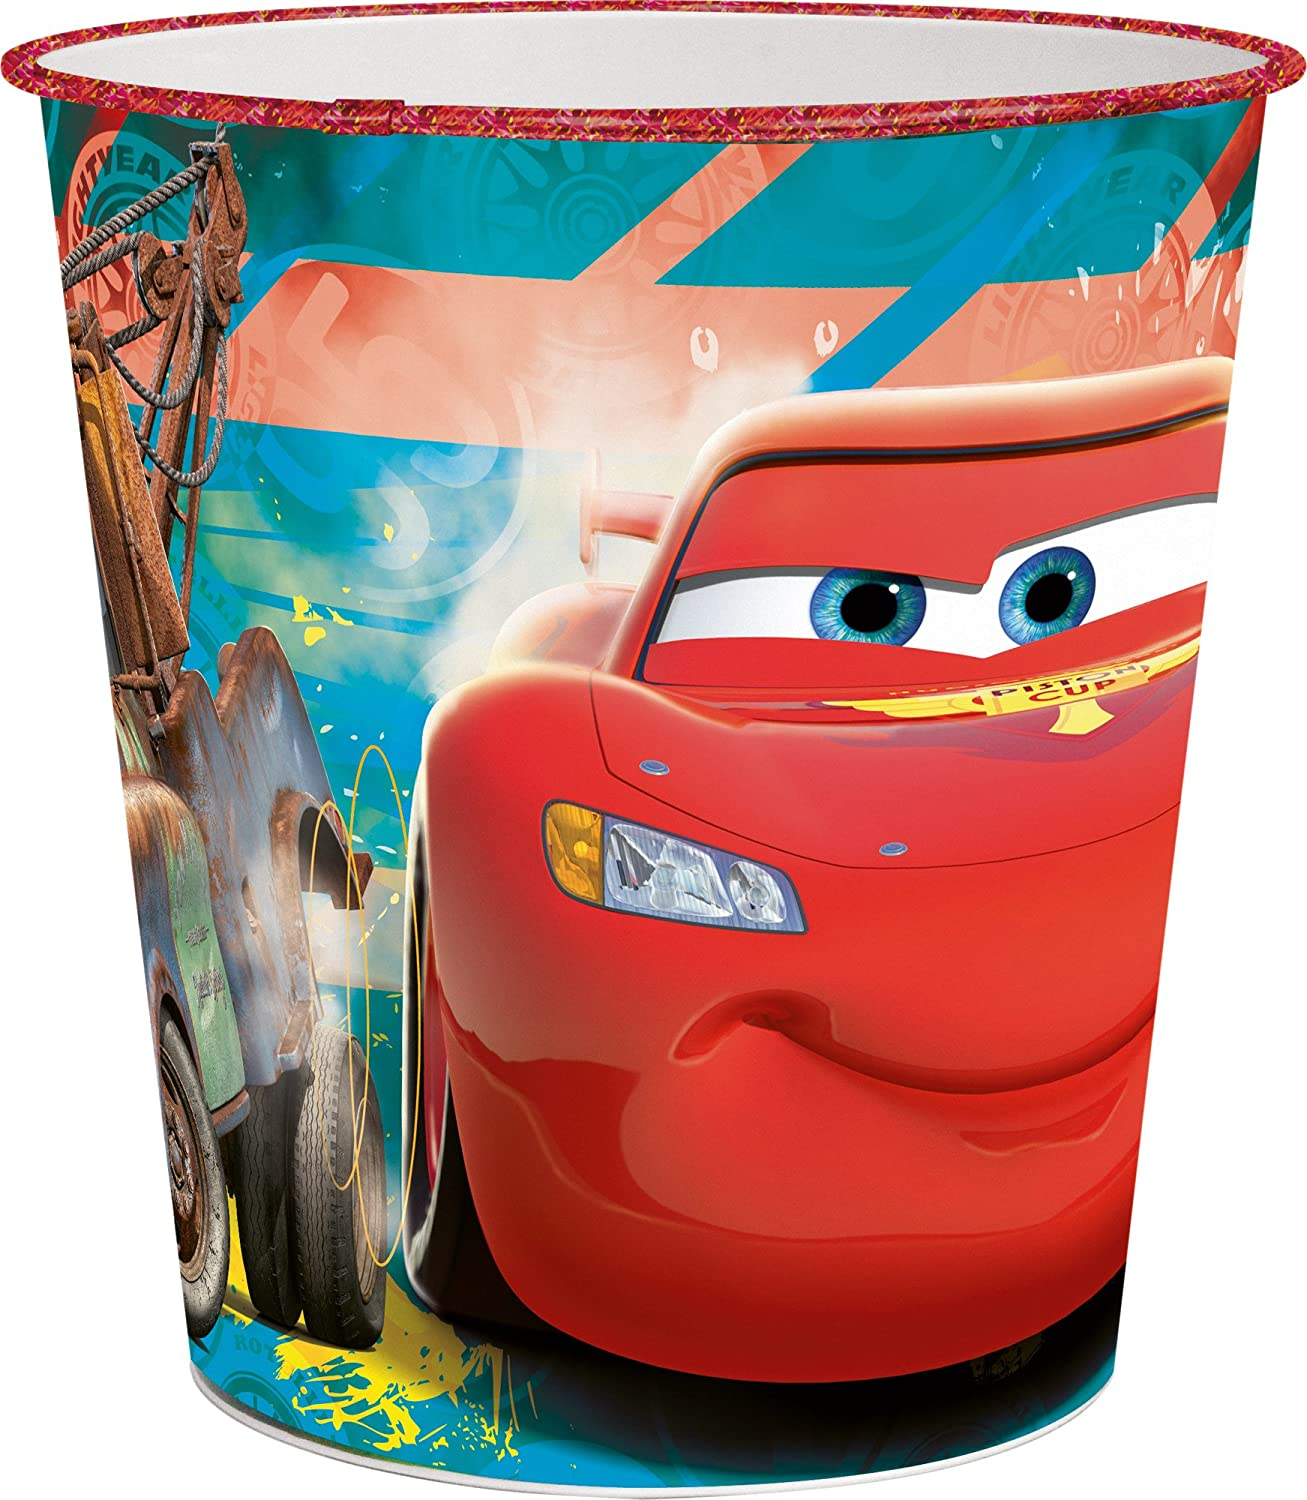 21 x 21 x 23 cm Joy Toy Cars Garbage Can Out of Plastic